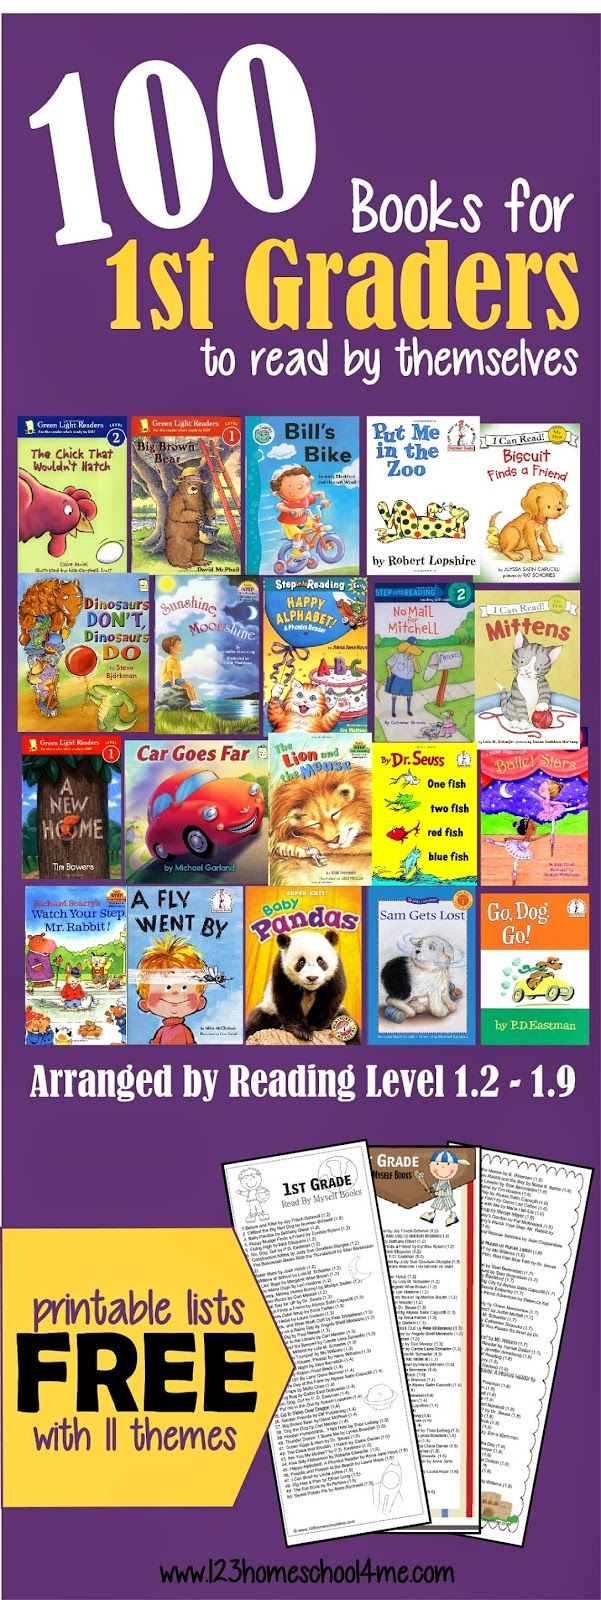 100 Fun To Read 1st Grade Books Printable Pdf By Reading Level Books For 1st Graders Books For First Graders 1st Grade Books What books should grade be reading